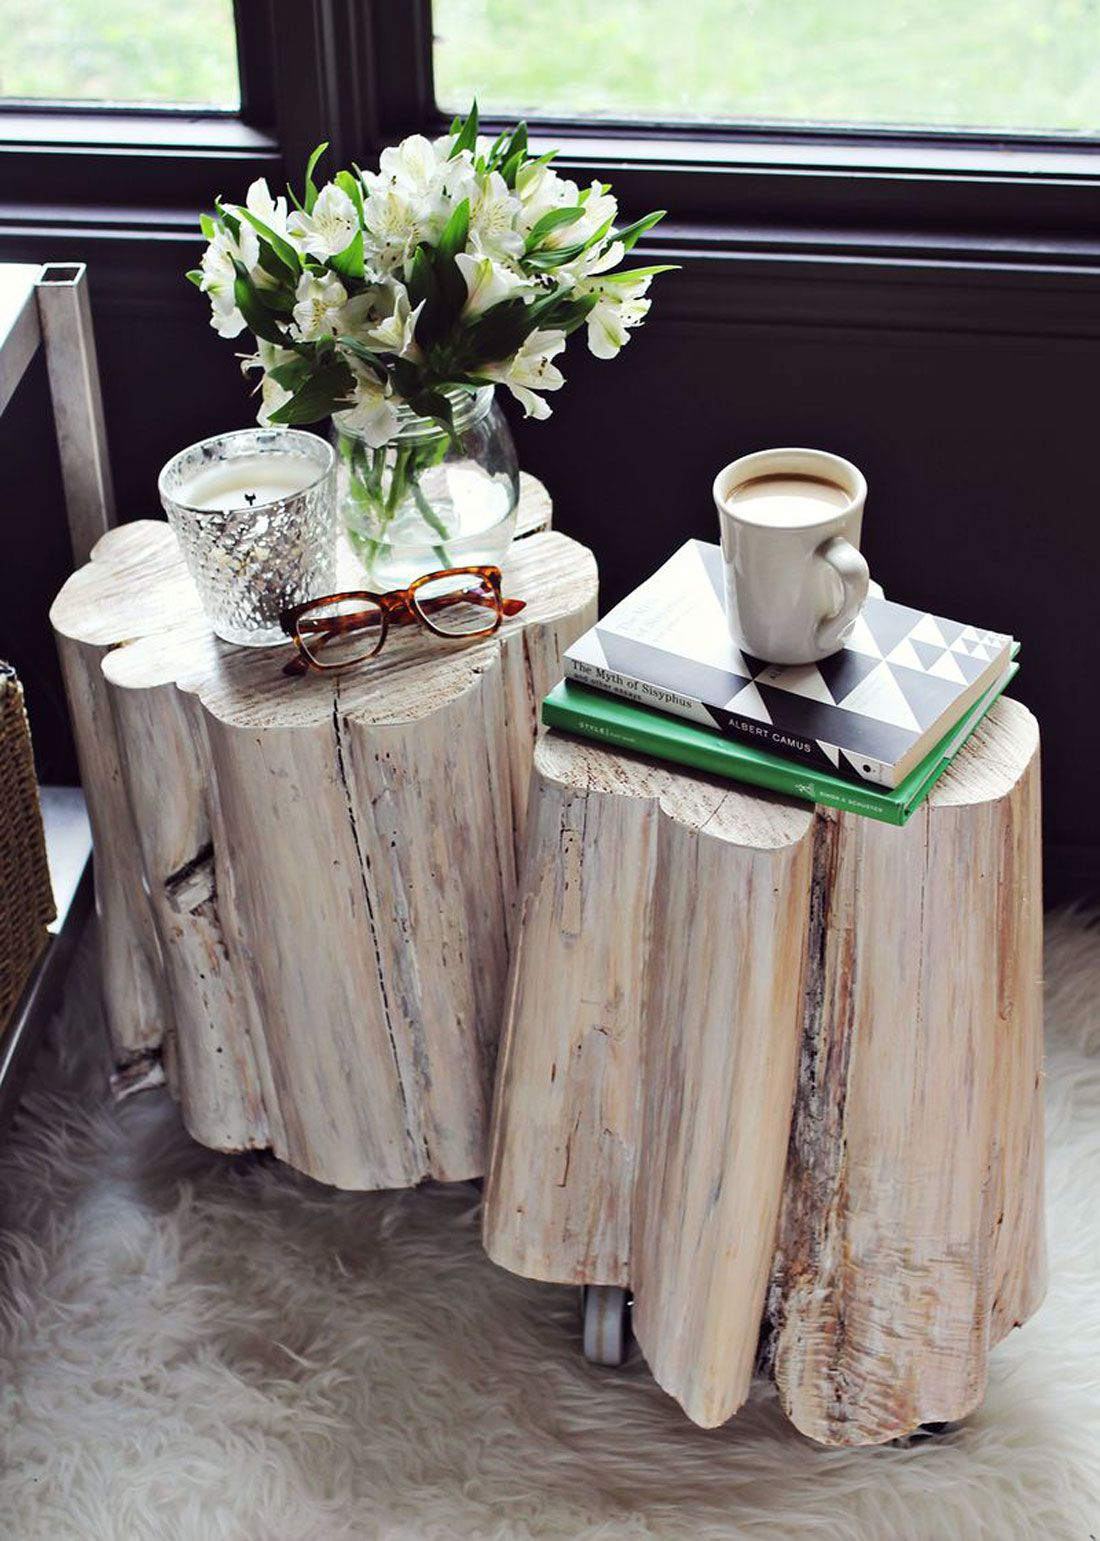 Quirky Bedside Tables 11 gorgeous diy side tables you can totally make via brit + co